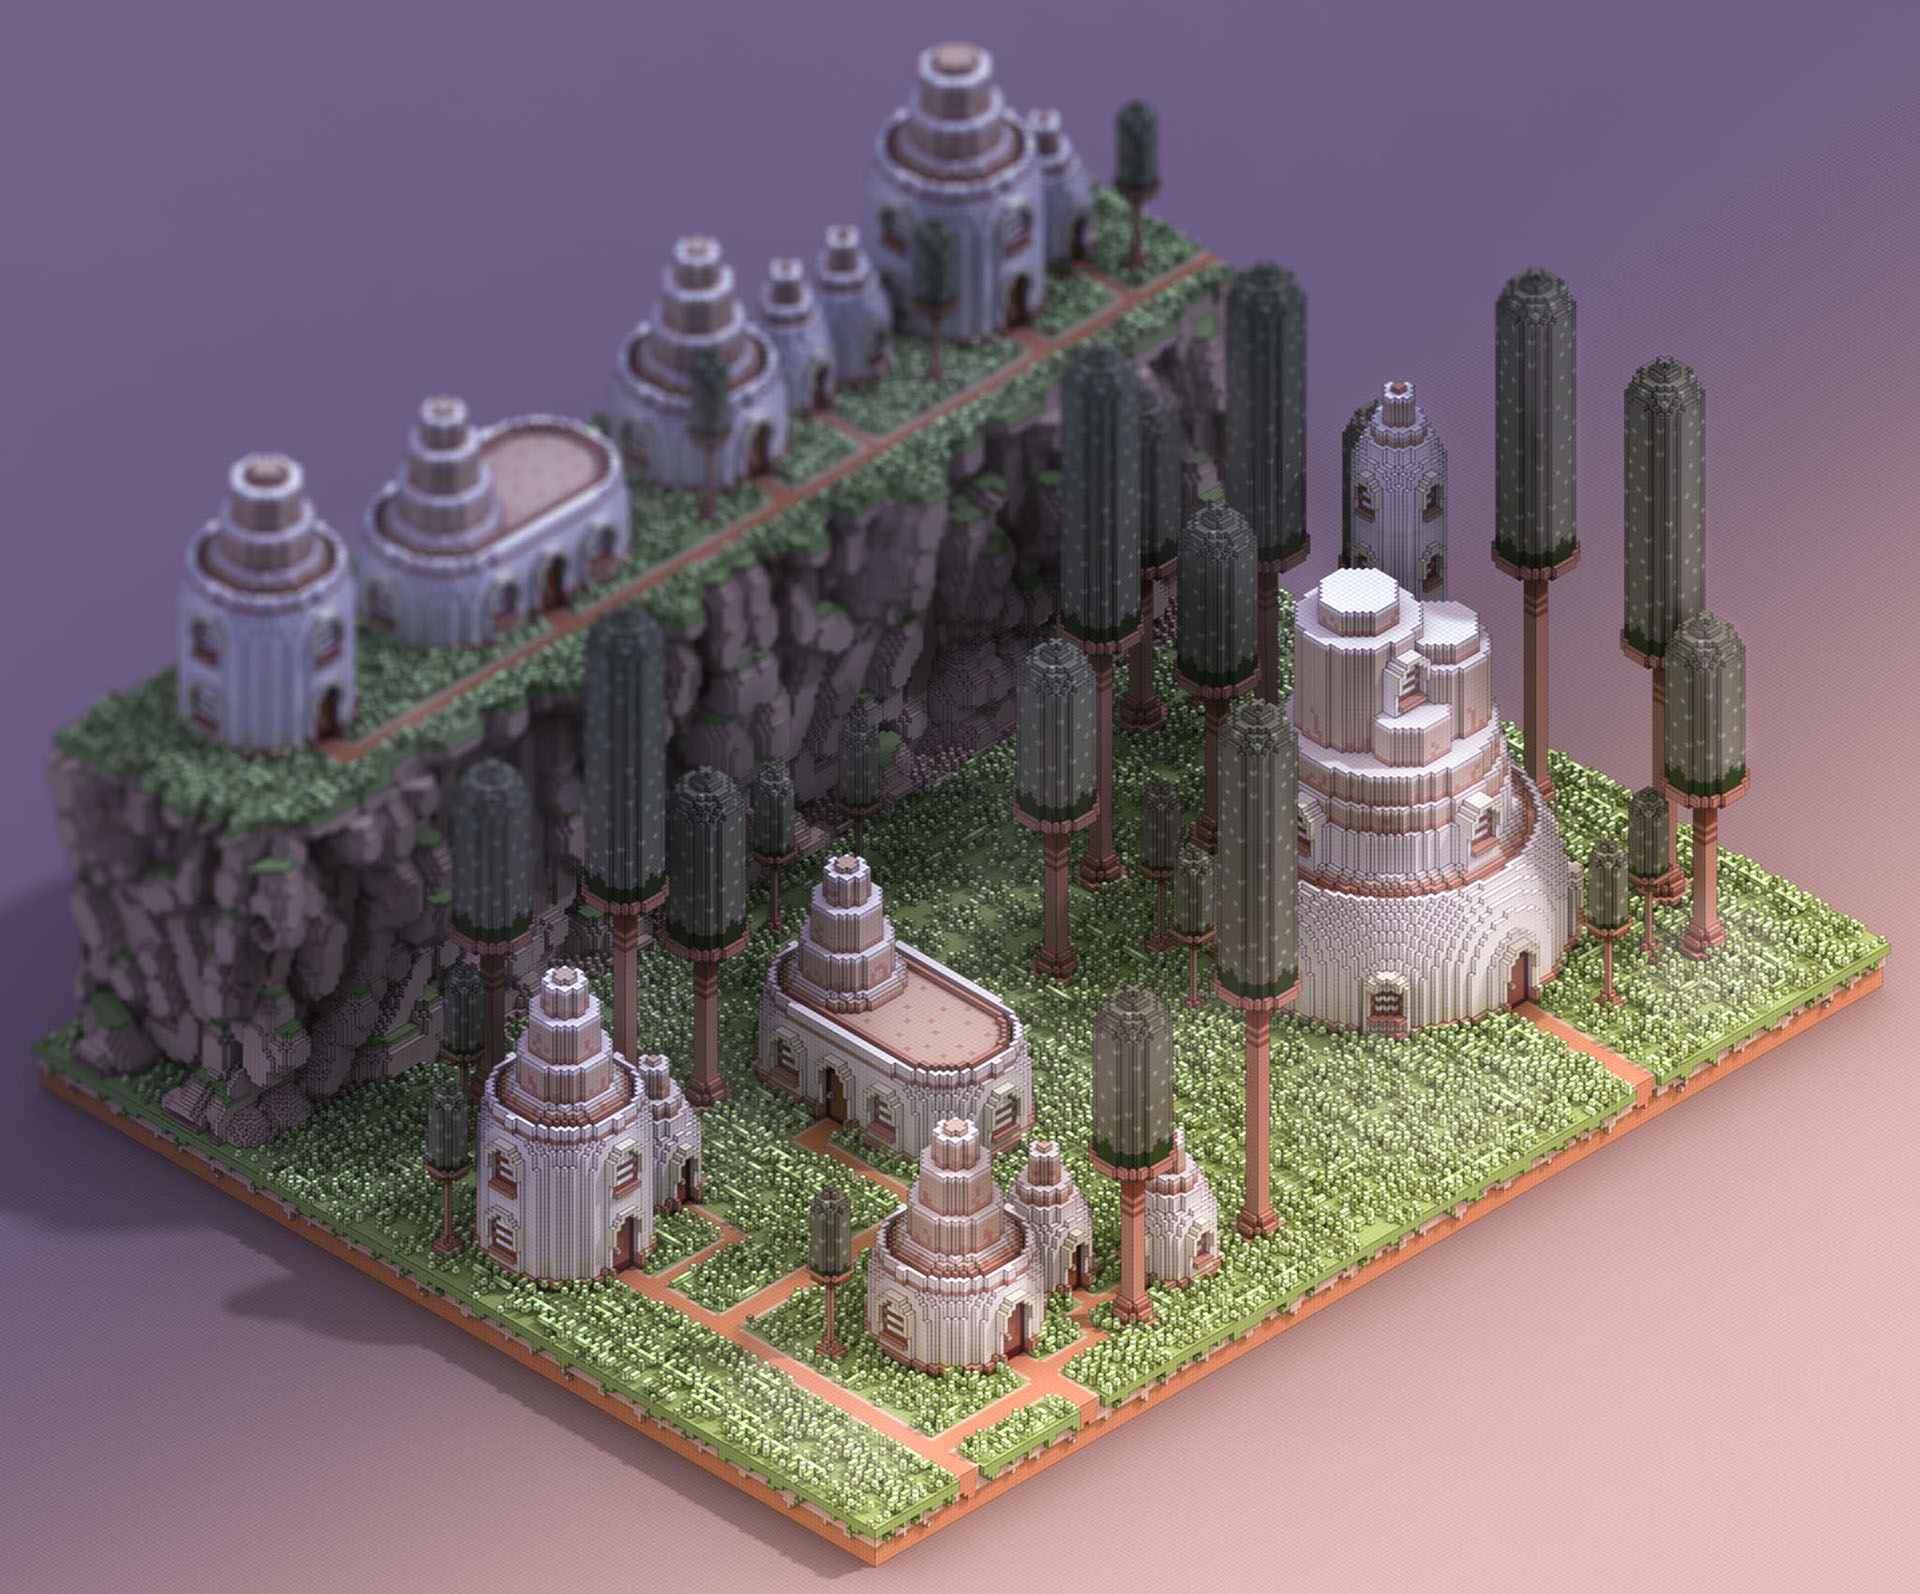 Digital Art: From Pixels to Voxels - CleverHumanity